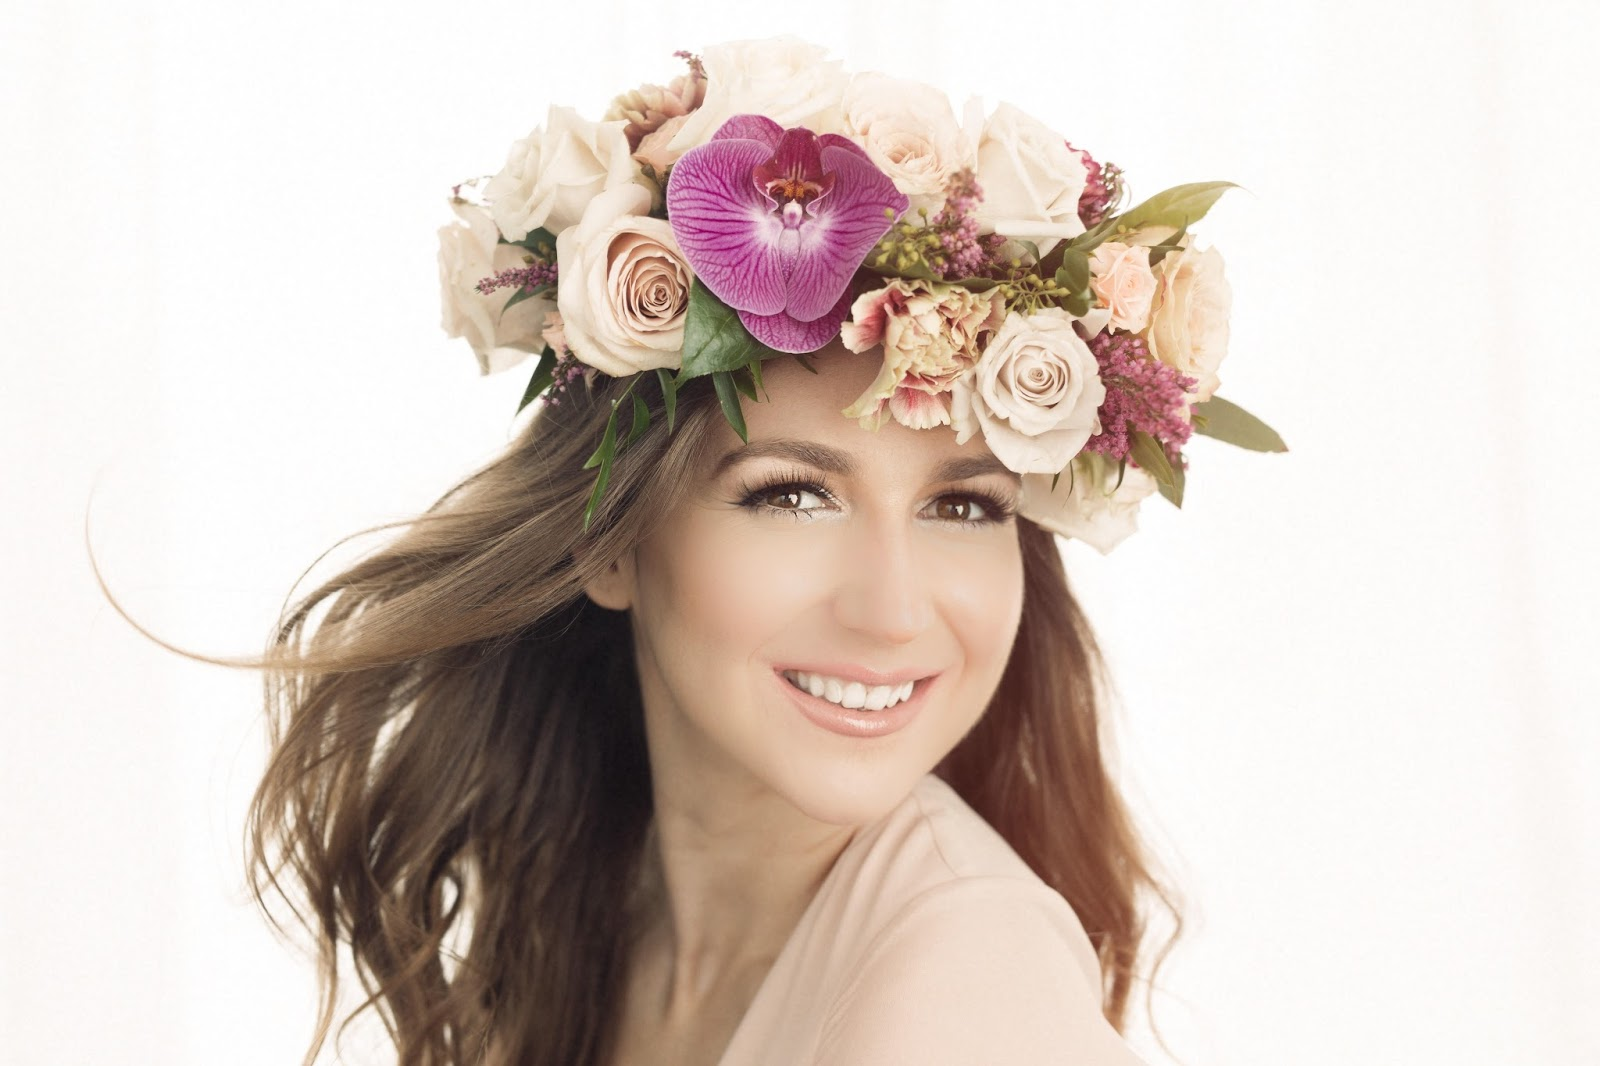 Styled shoot flower crowns we recently collaborated on a contest with julia park fine art photography where the winner anna rocked some glam looks and flower crowns izmirmasajfo